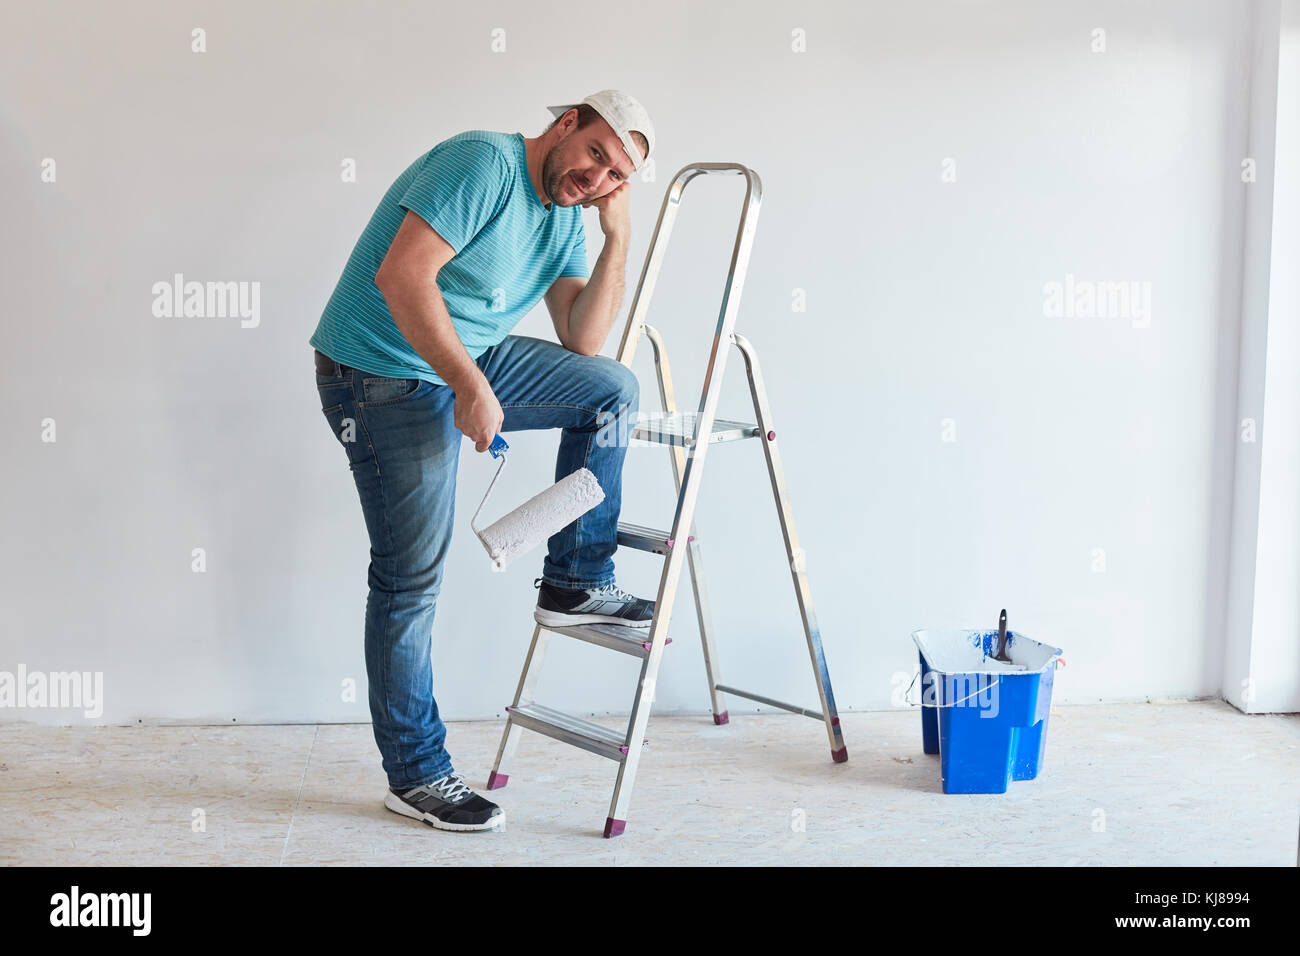 The tired painter rests after painting - Stock Image